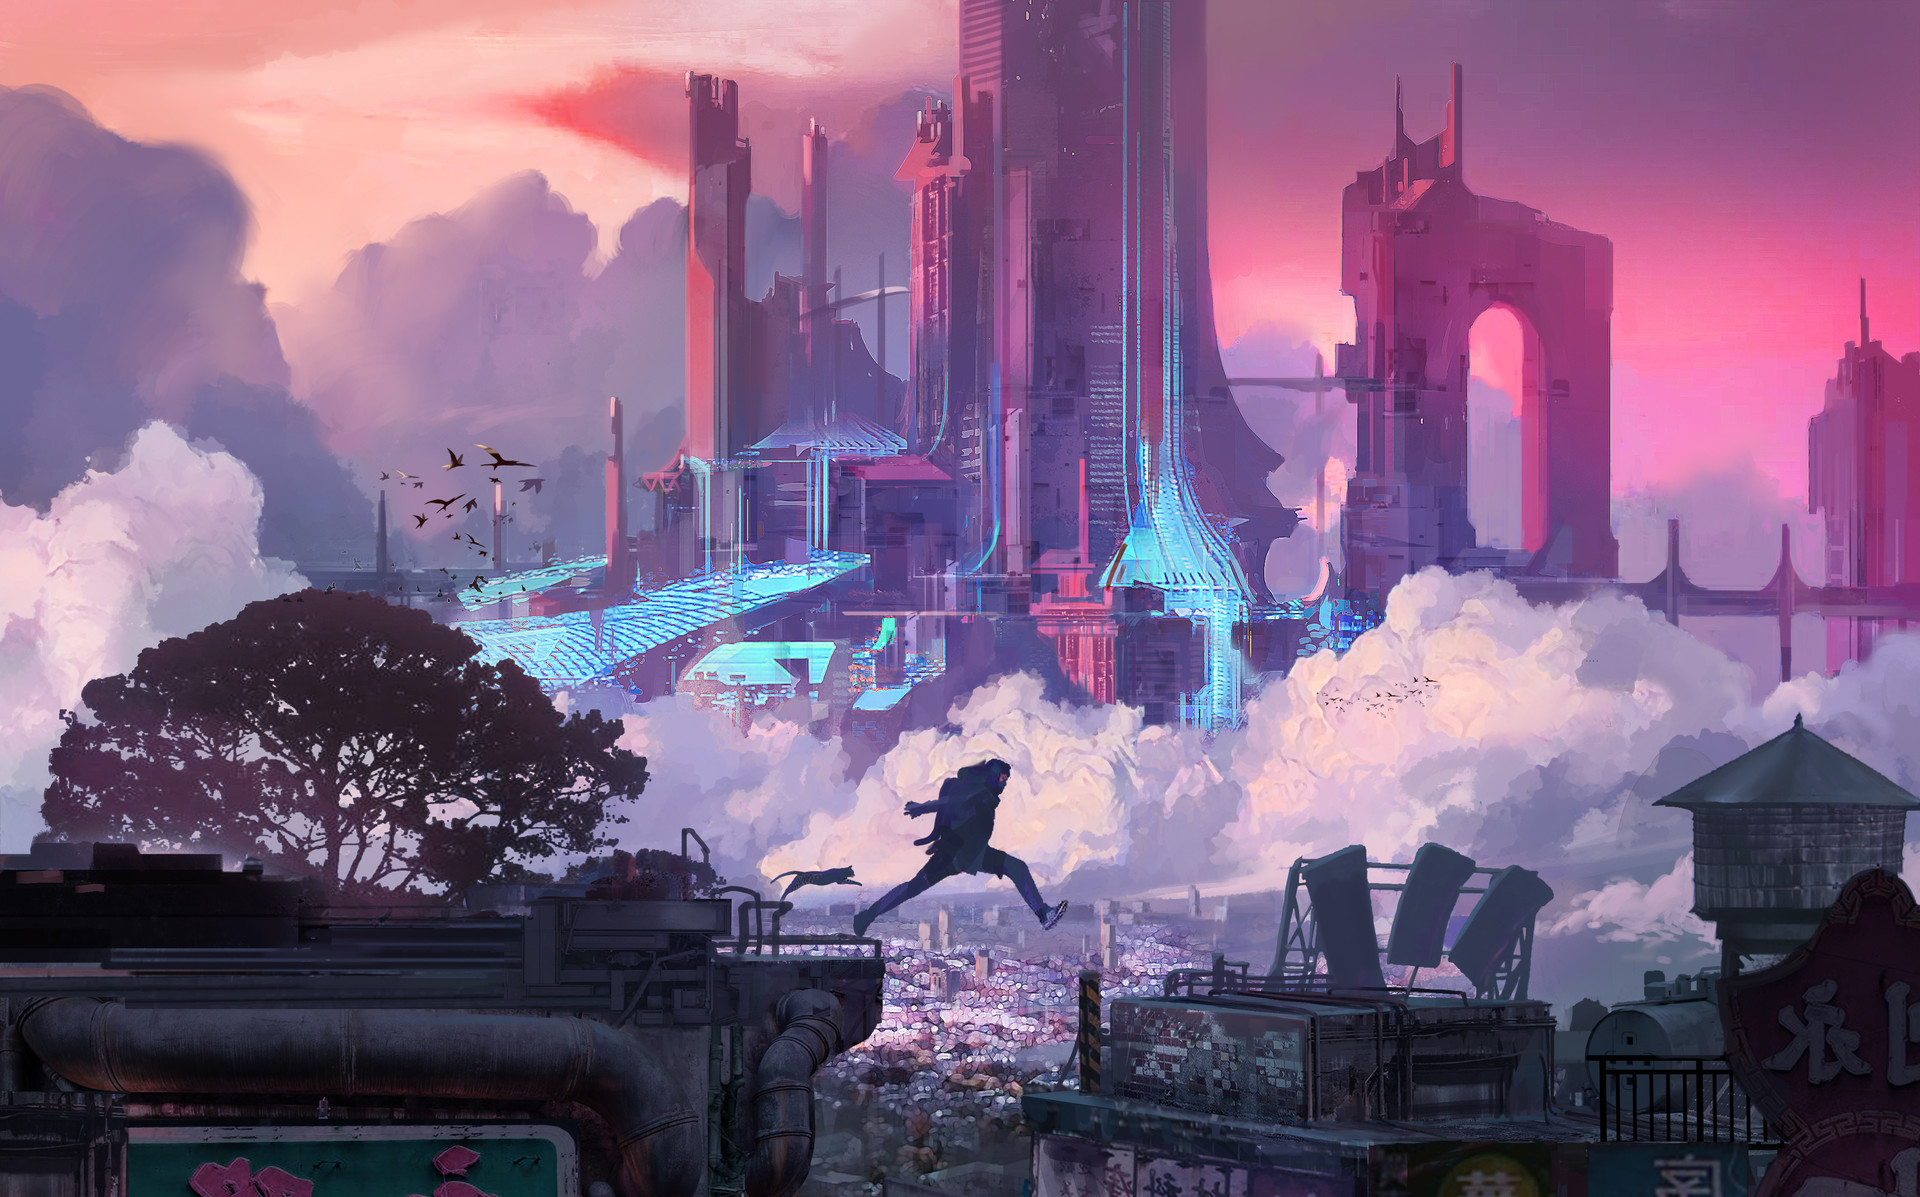 General 1920x1197 Fu Chenqi cyber cyberpunk futuristic futuristic city jumping parkour science fiction artwork cityscape